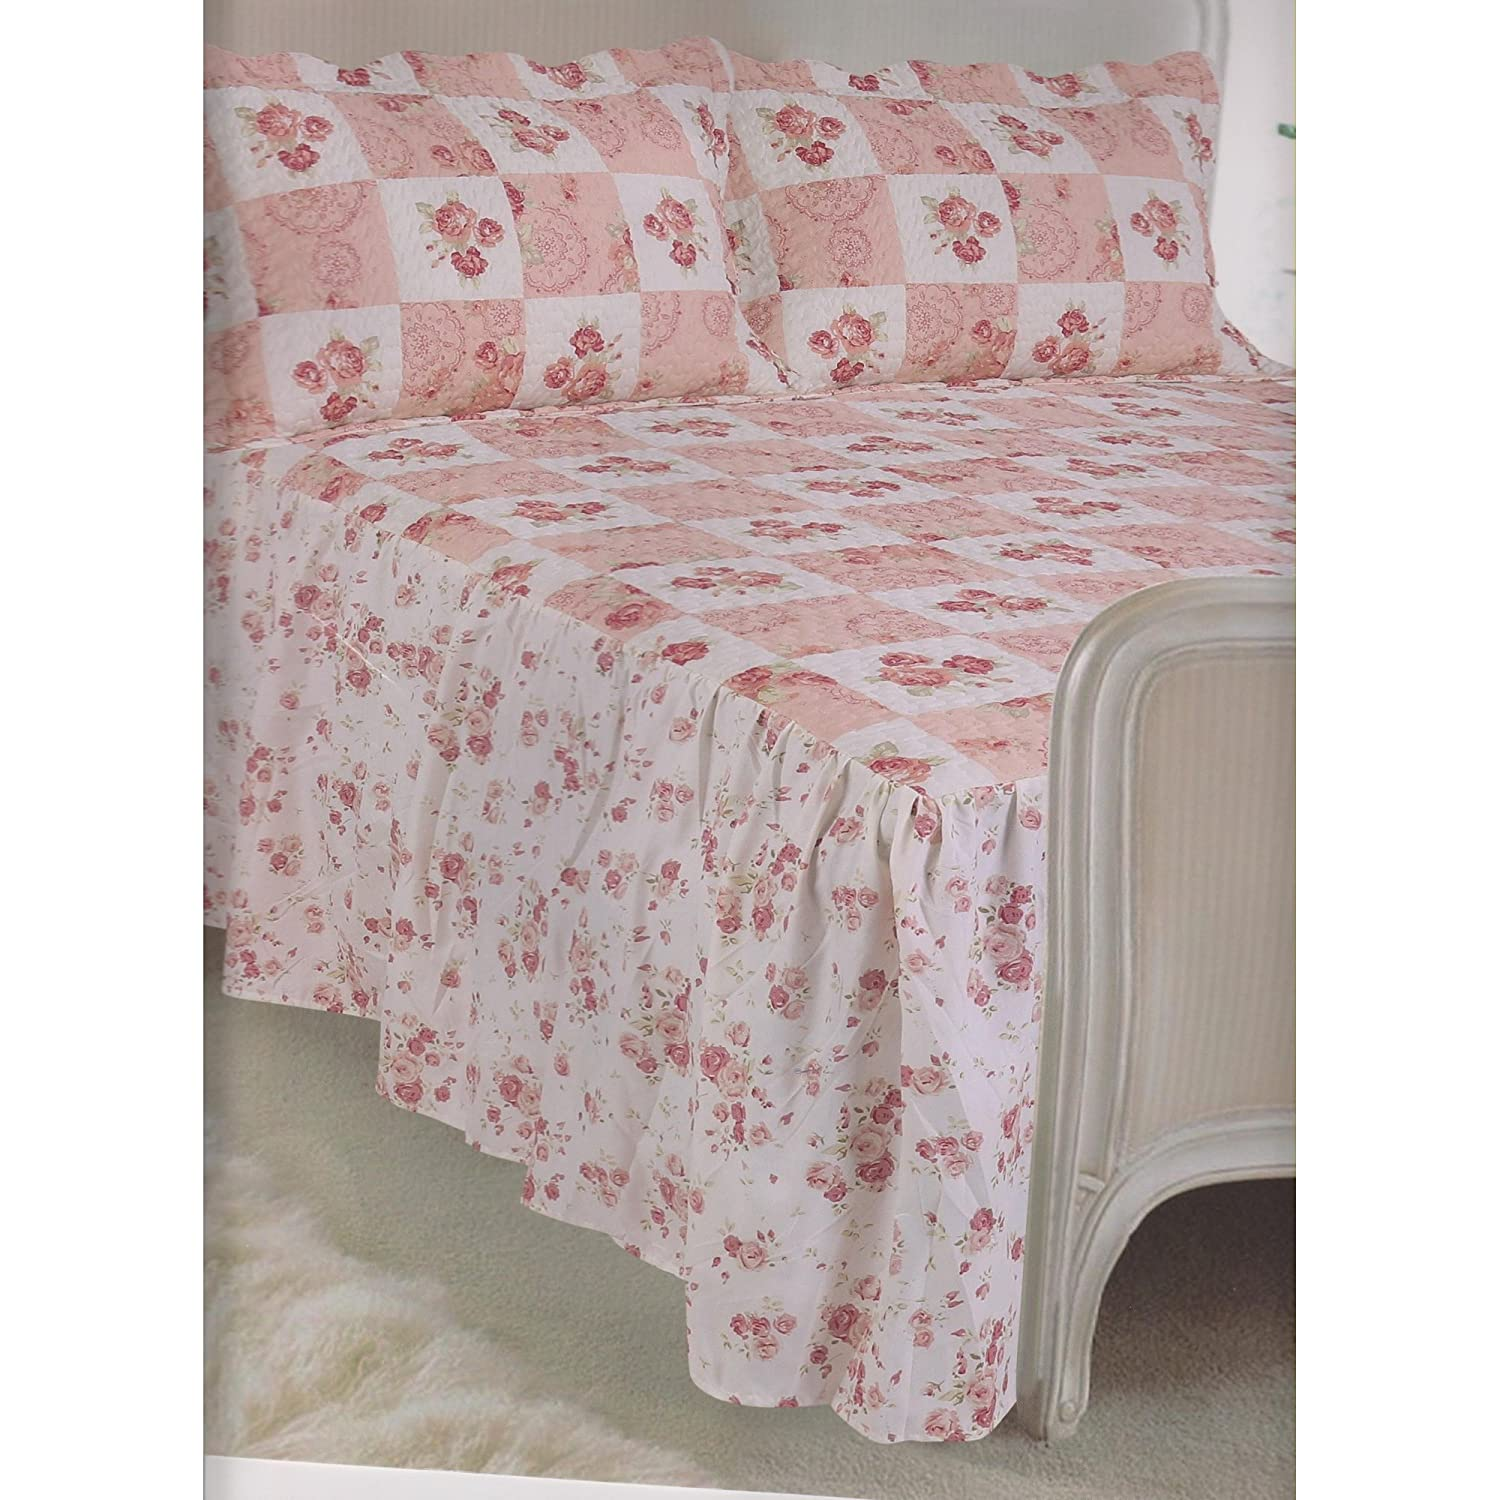 Traditional Vintage Quilted Fitted Bedspread Set Single Size Bedspread & 1 Pillowsham Frilled Colorado Home Harmony